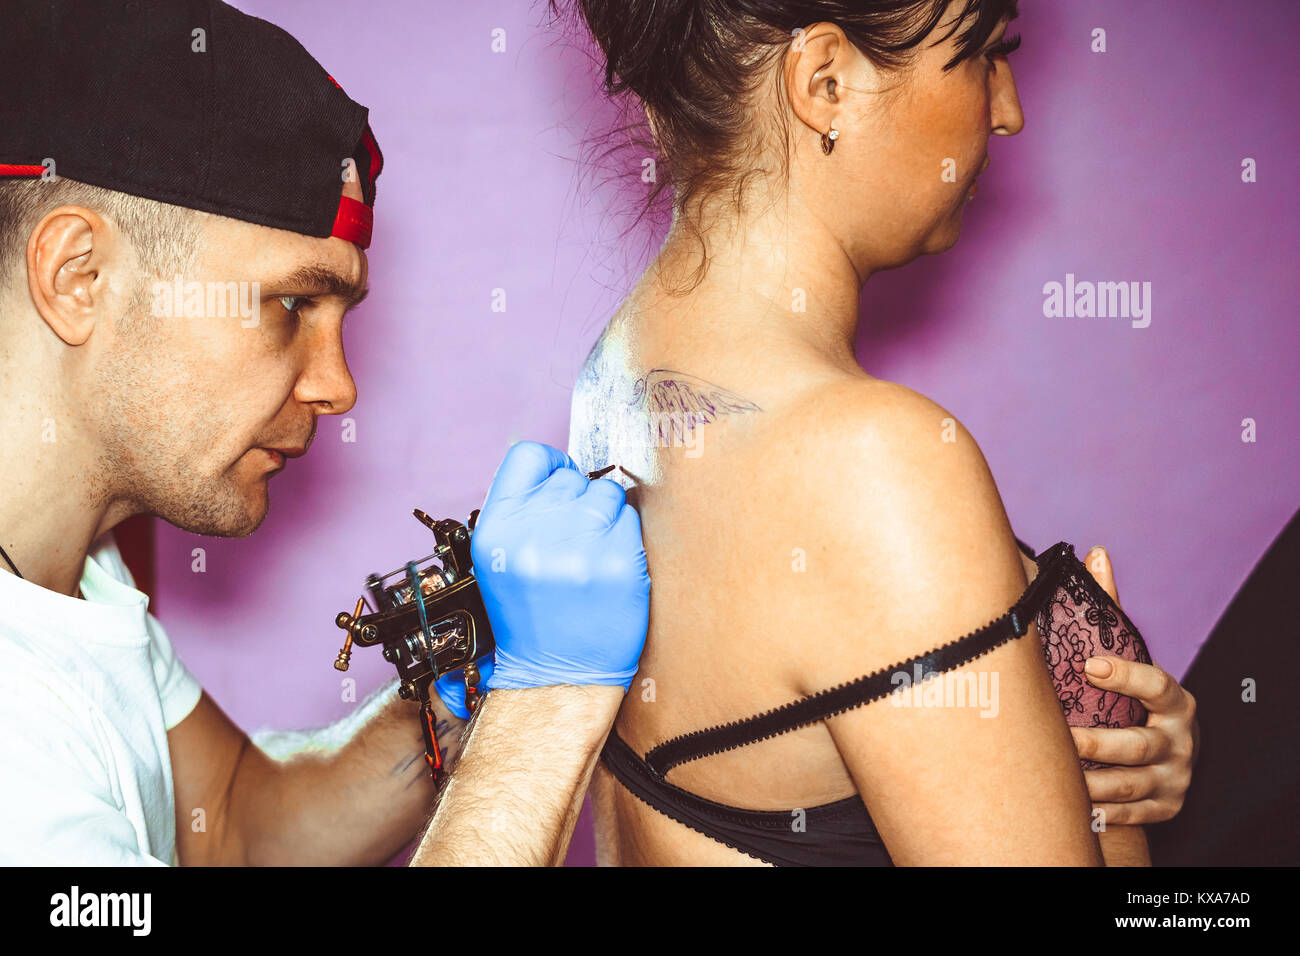 master tattoo woman on her back - Stock Image